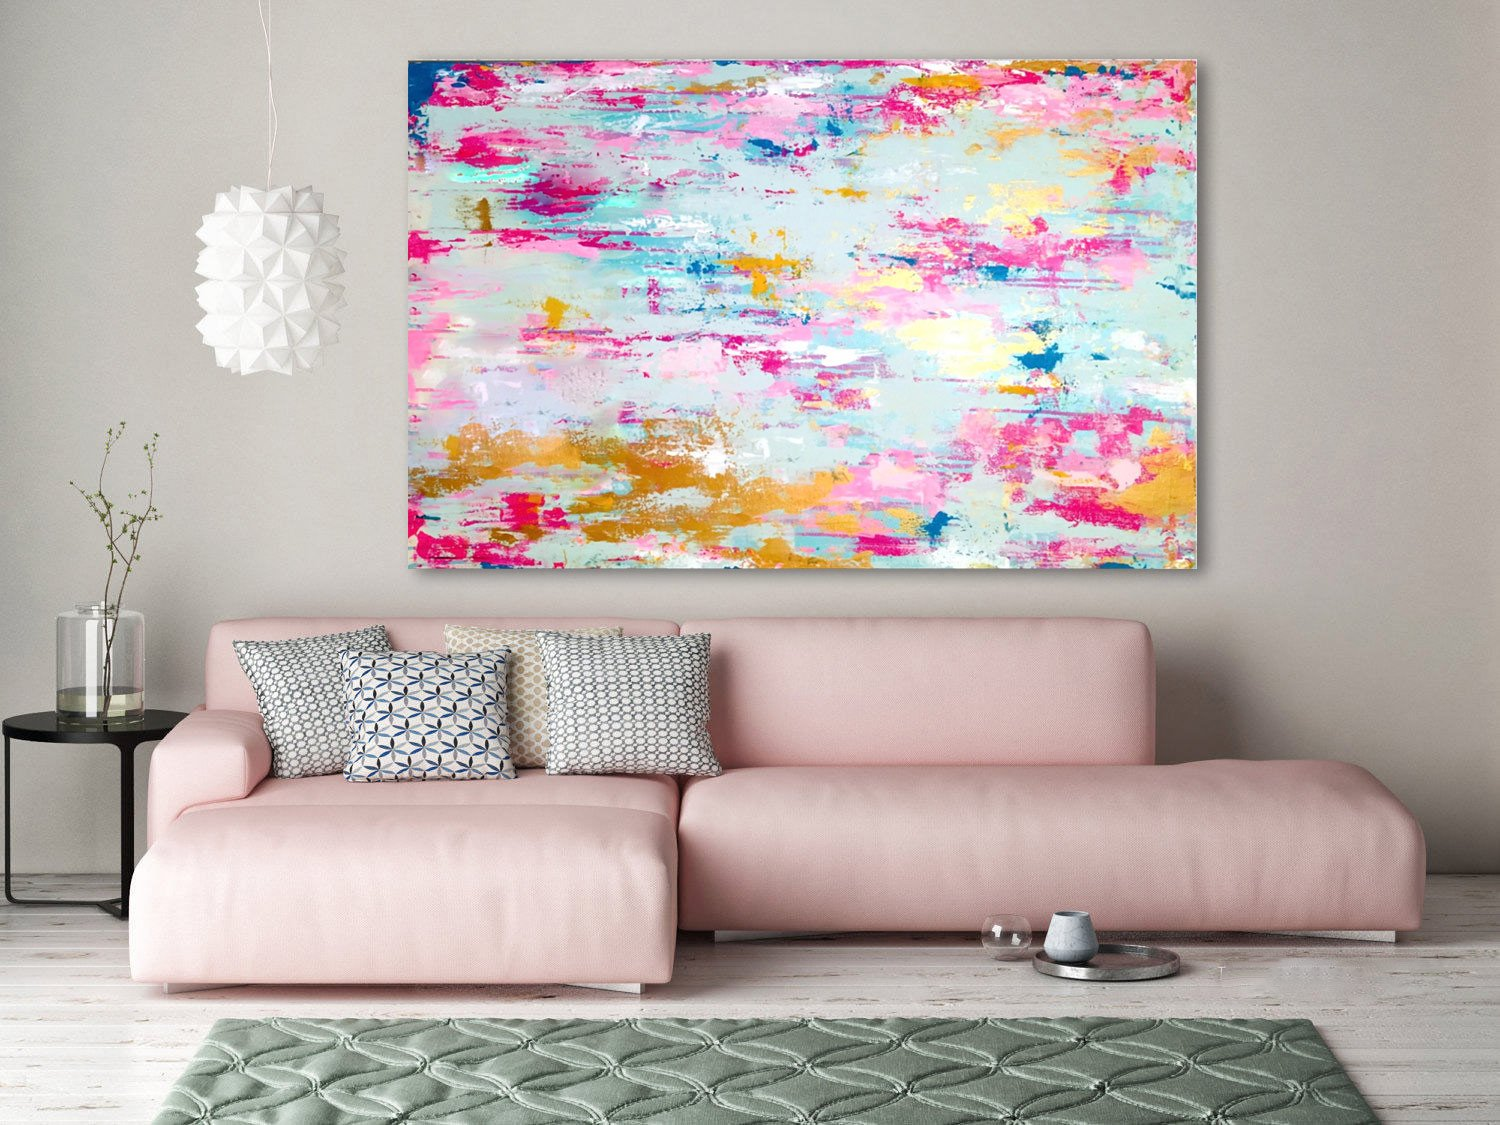 Hand made Modern Abstract Pink Painting, Pink Gold, Gold Leaf Abstract Art Gold Leaf Canvas Abstract Gold Art, Original Canvas Art, Blue Abstract Art by Fchen Art